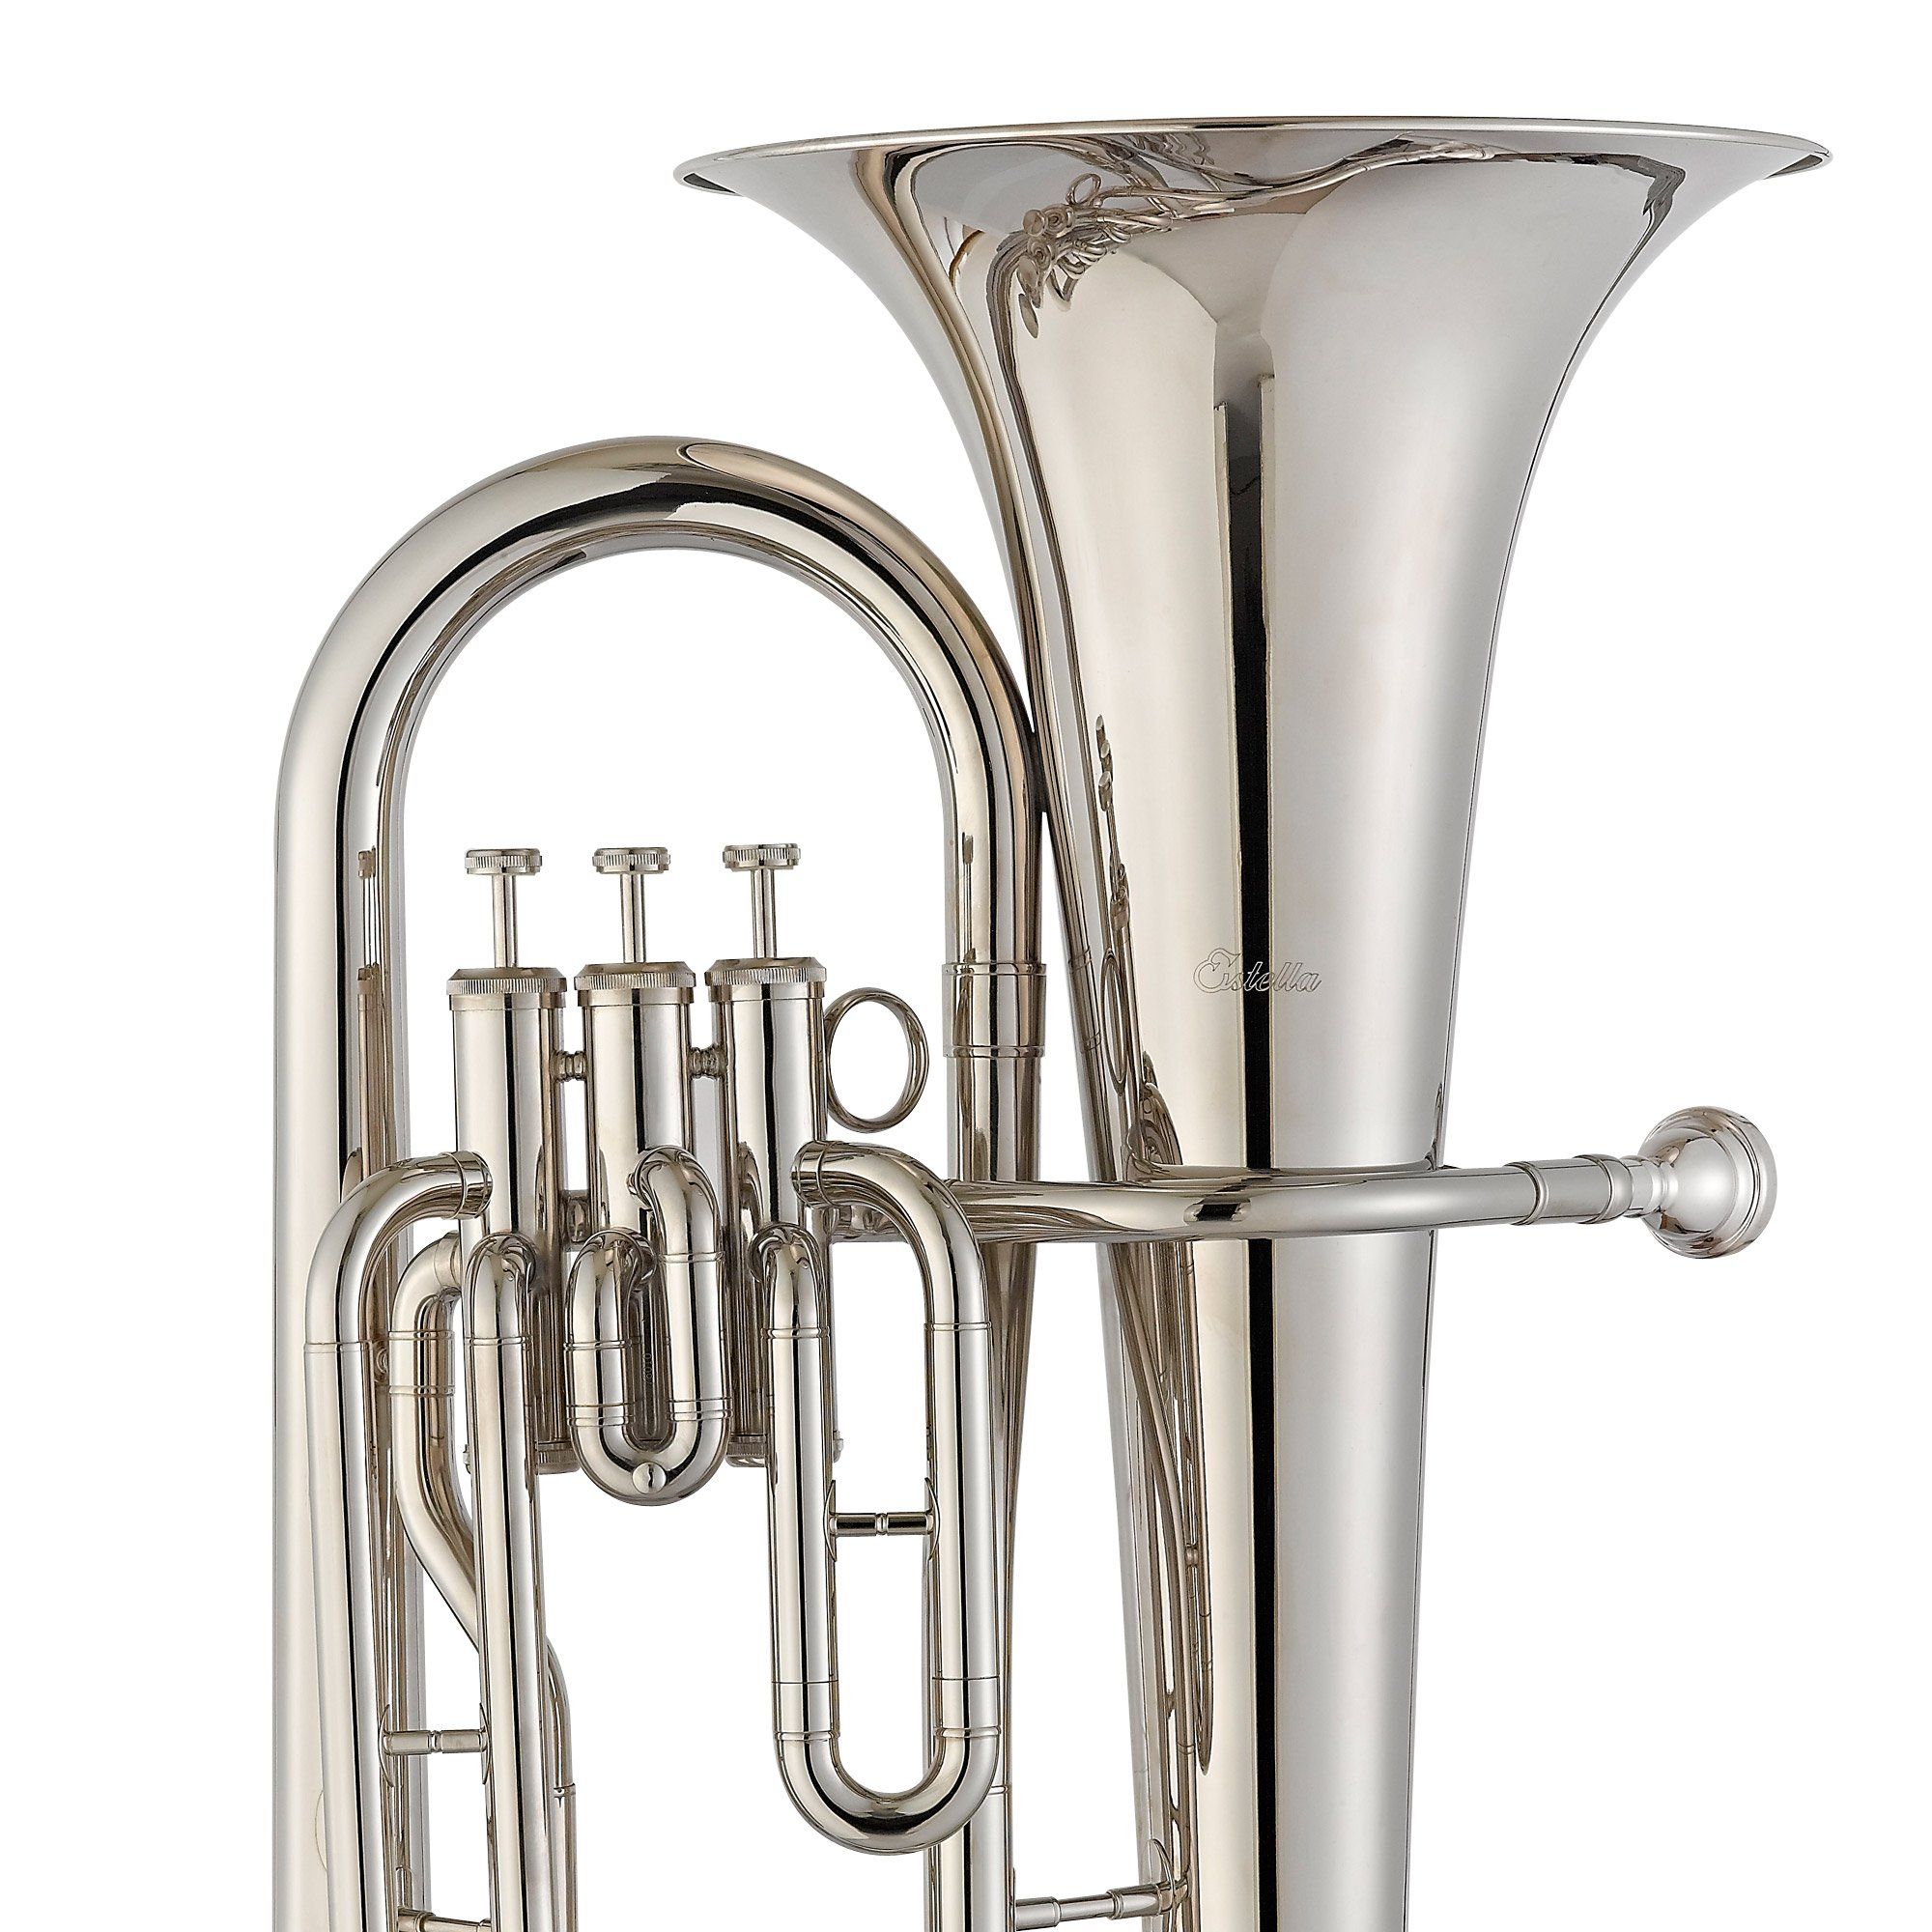 Estella EU200N Nickel Plated B Flat Euphonium with Stainless Steel Pistons by Estella (Image #4)